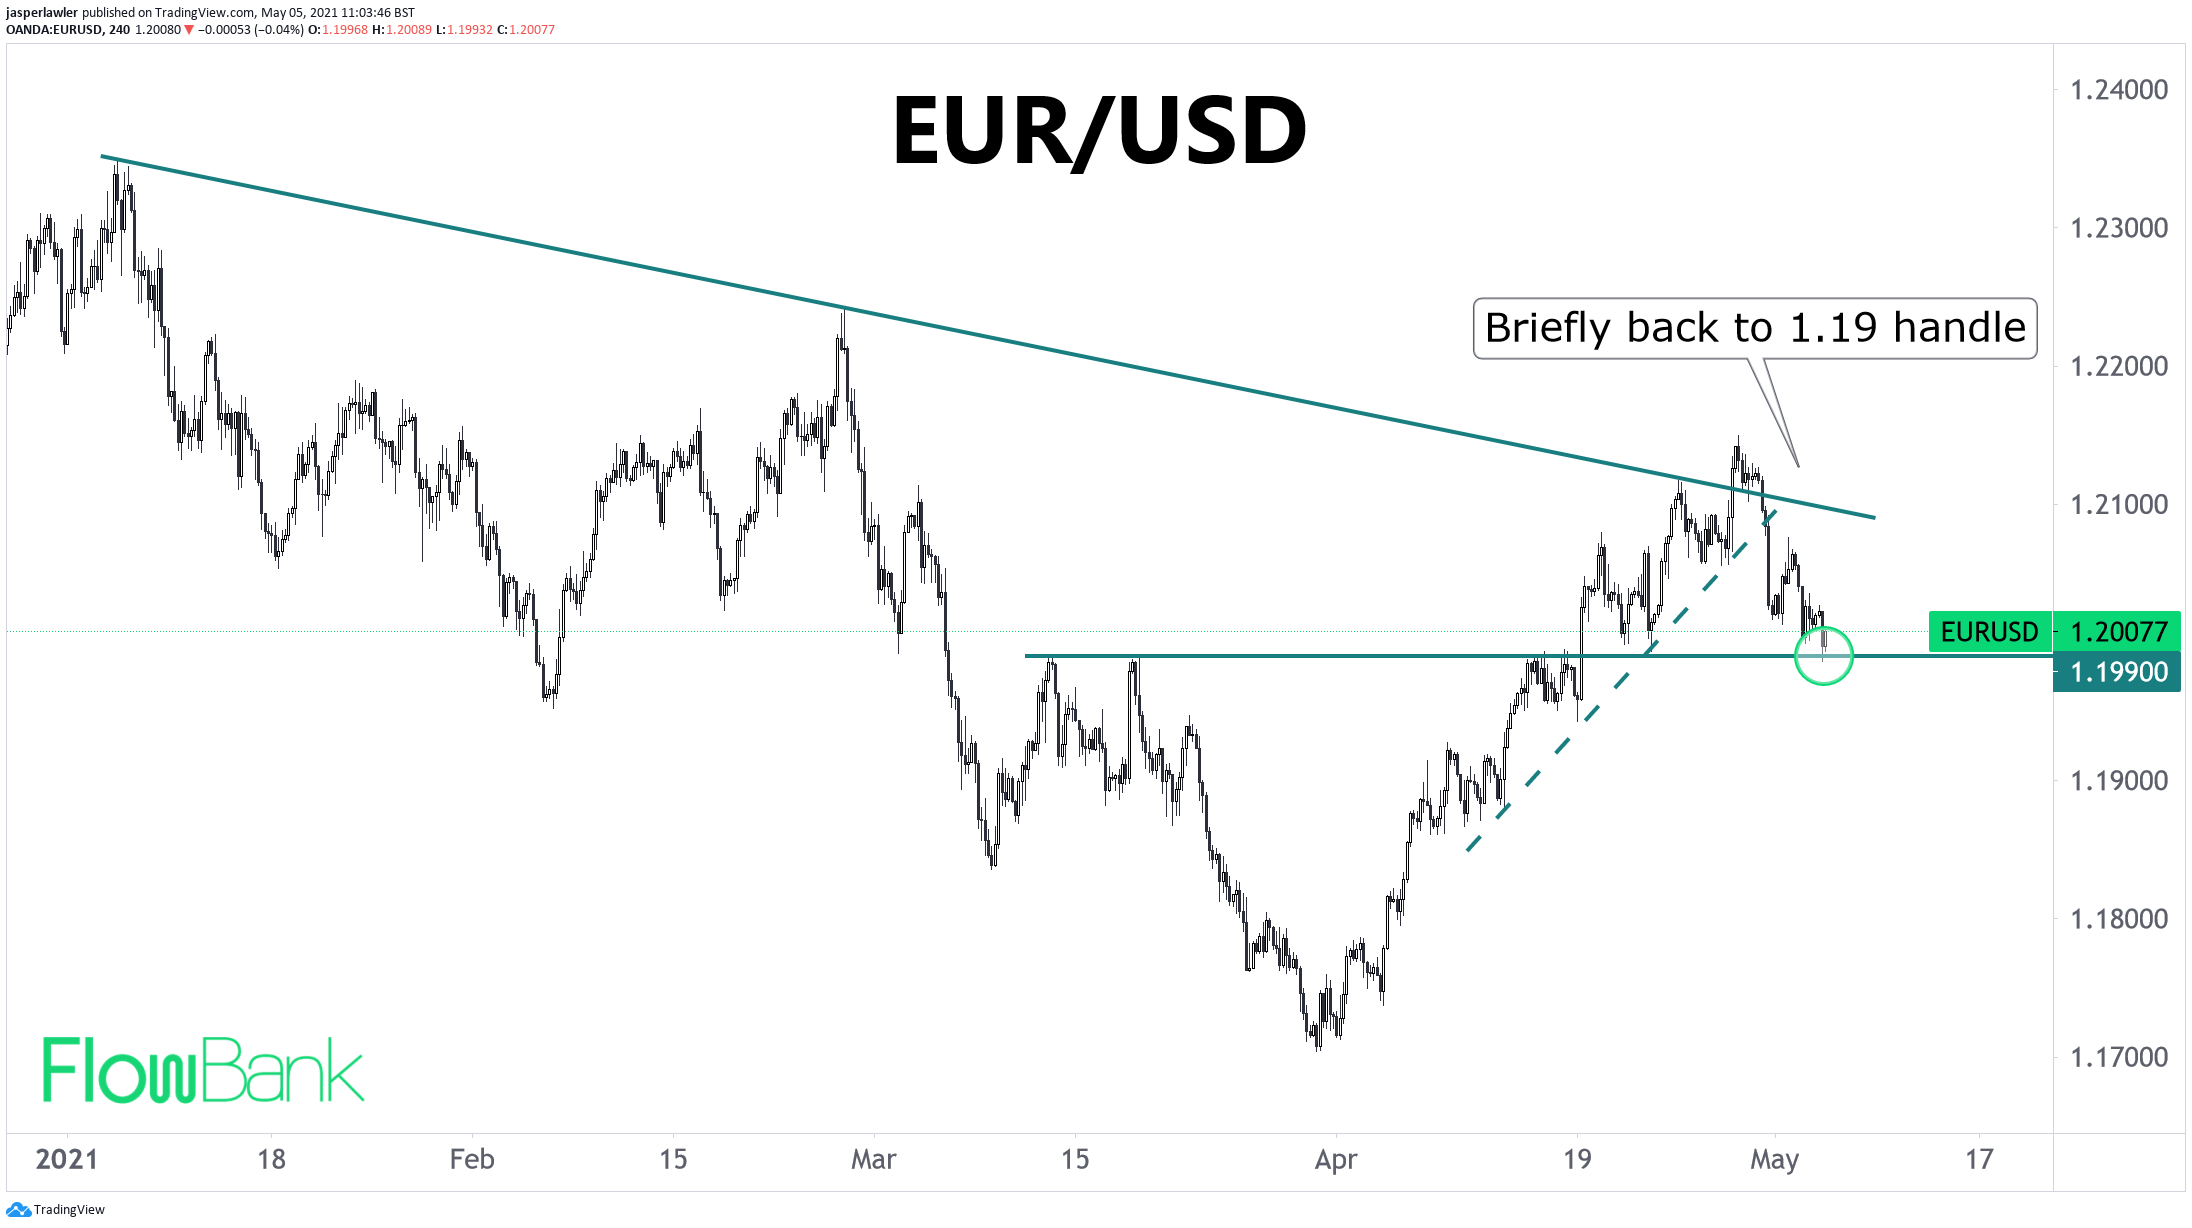 EUR/USD briefly falls back to a 1.19 handle